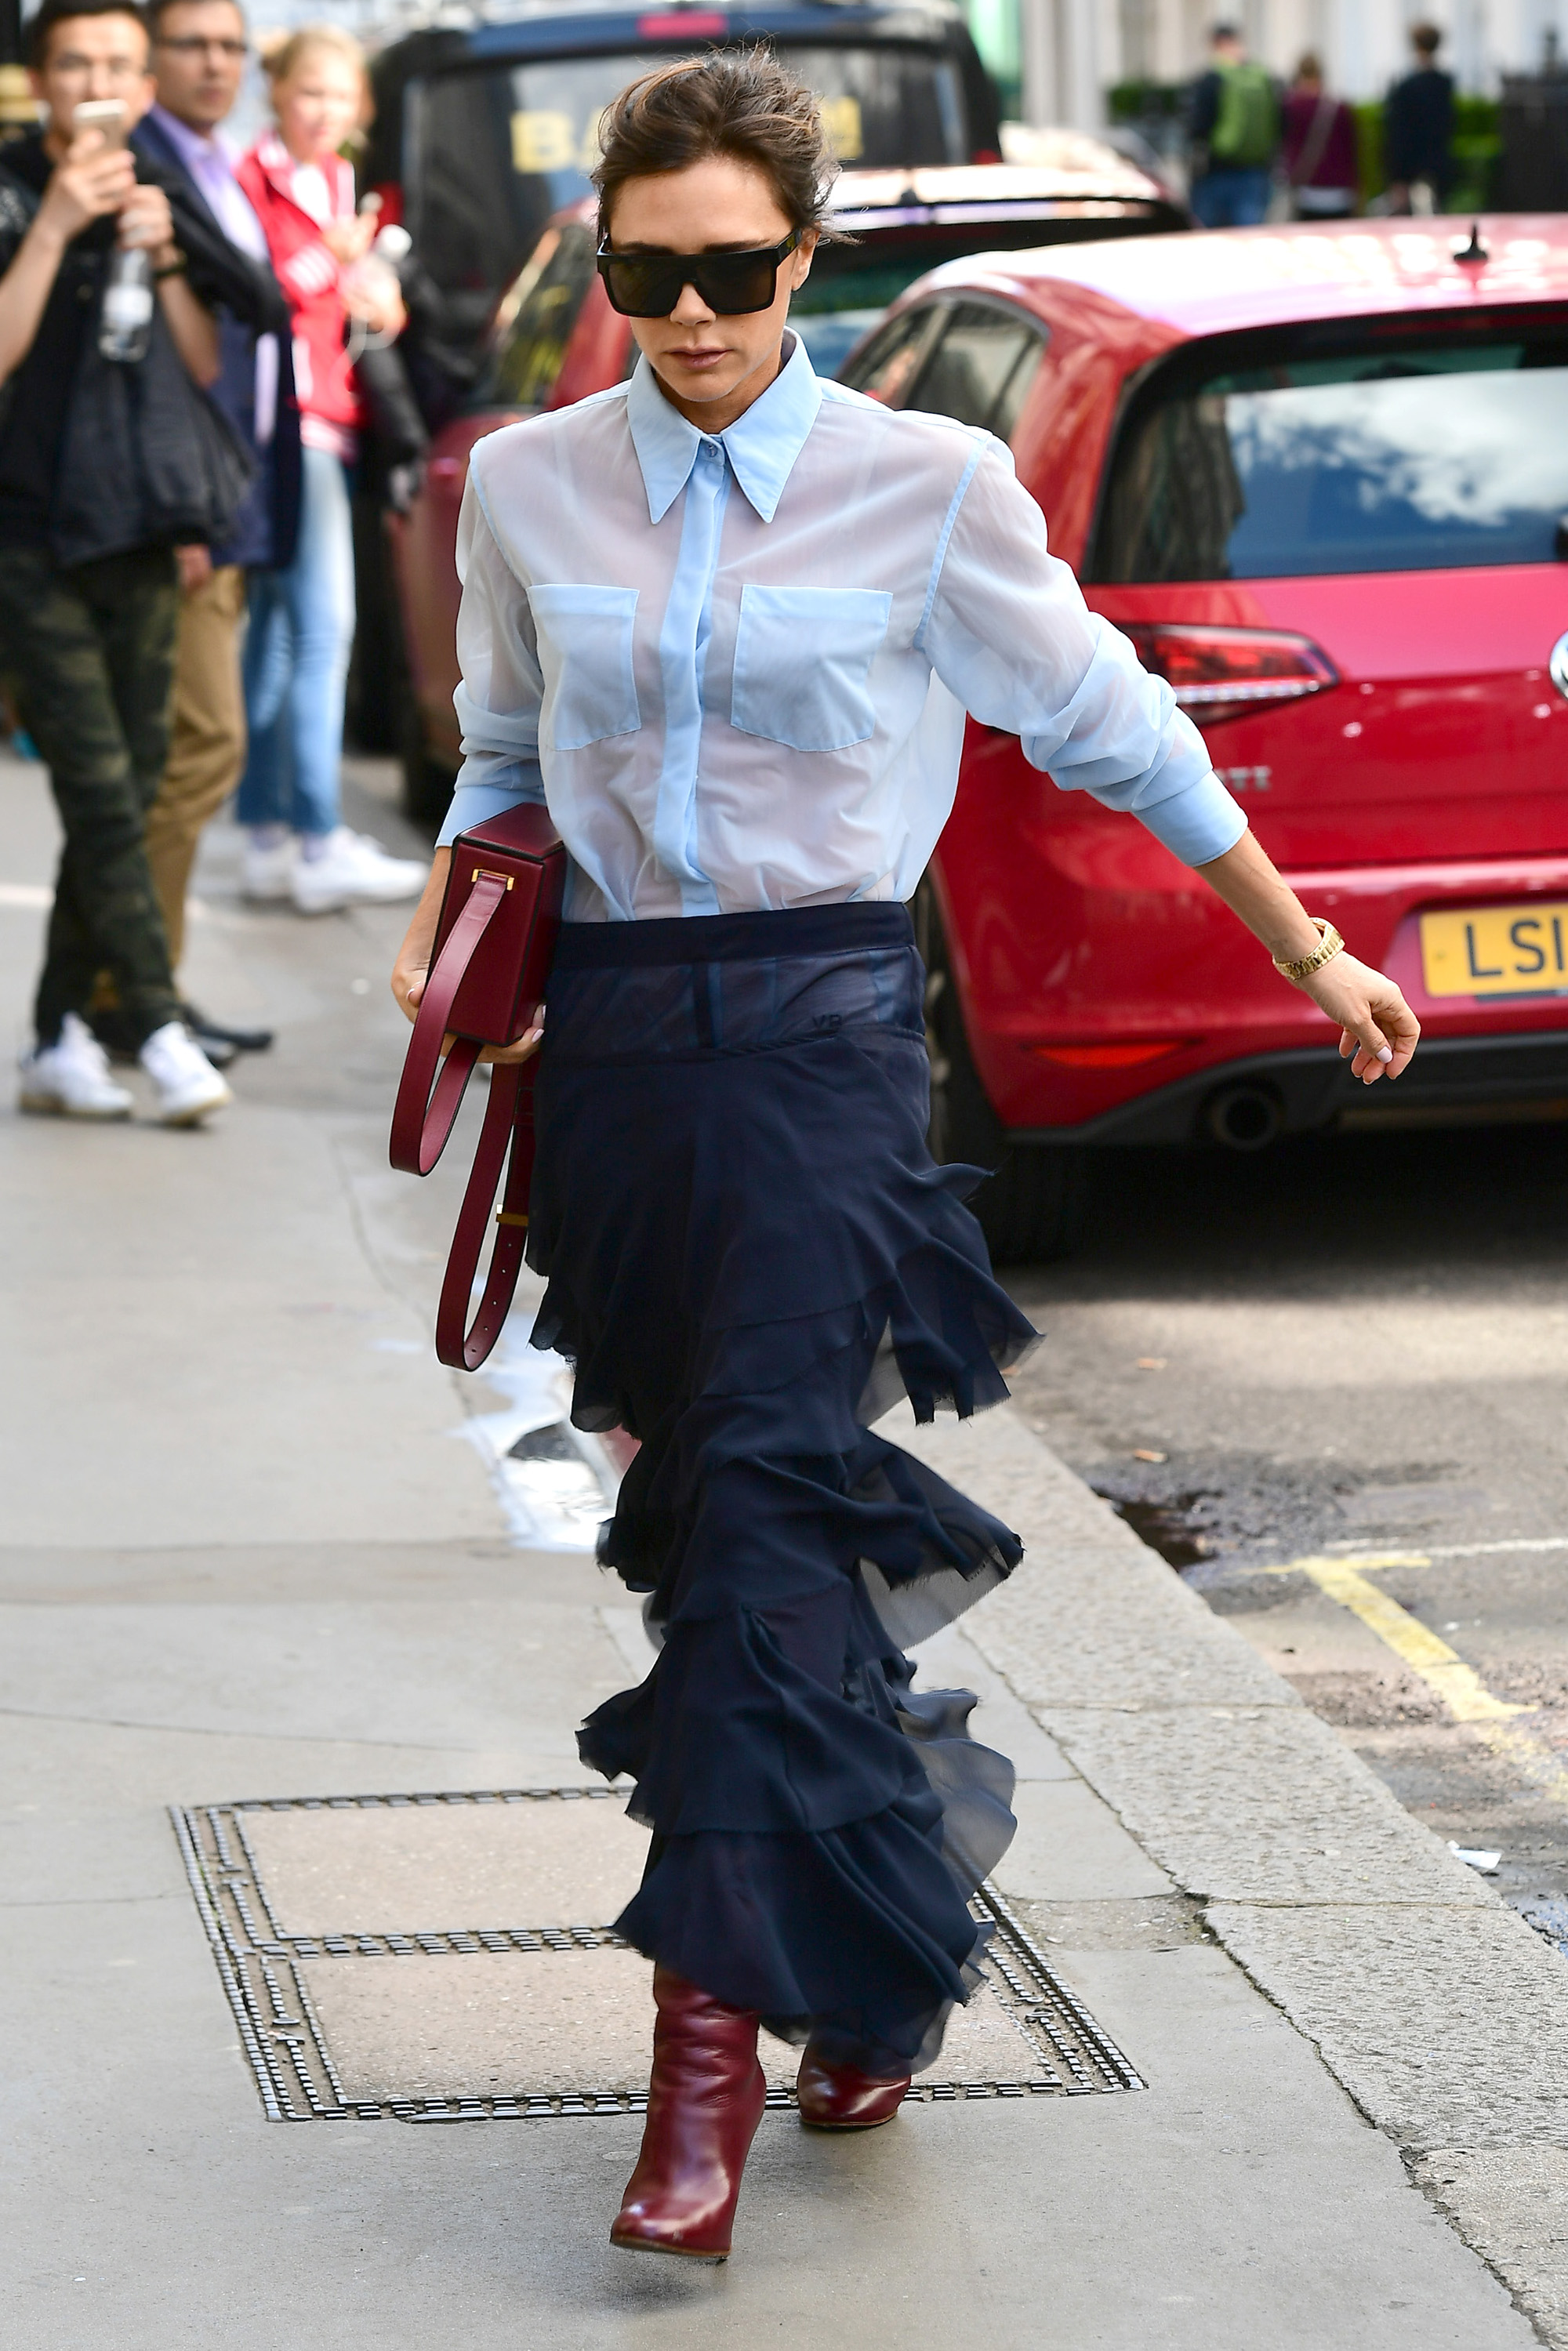 Victoria Beckham arrives at the Victoria Beckham shop in London  Pictured: Victoria Beckham Ref: SPL1583794  220917   Picture by: Max Tollworthy / Splash News  Splash News and Pictures Los Angeles:310-821-2666 New York:212-619-2666 London:870-934-2666 photodesk@splashnews.com